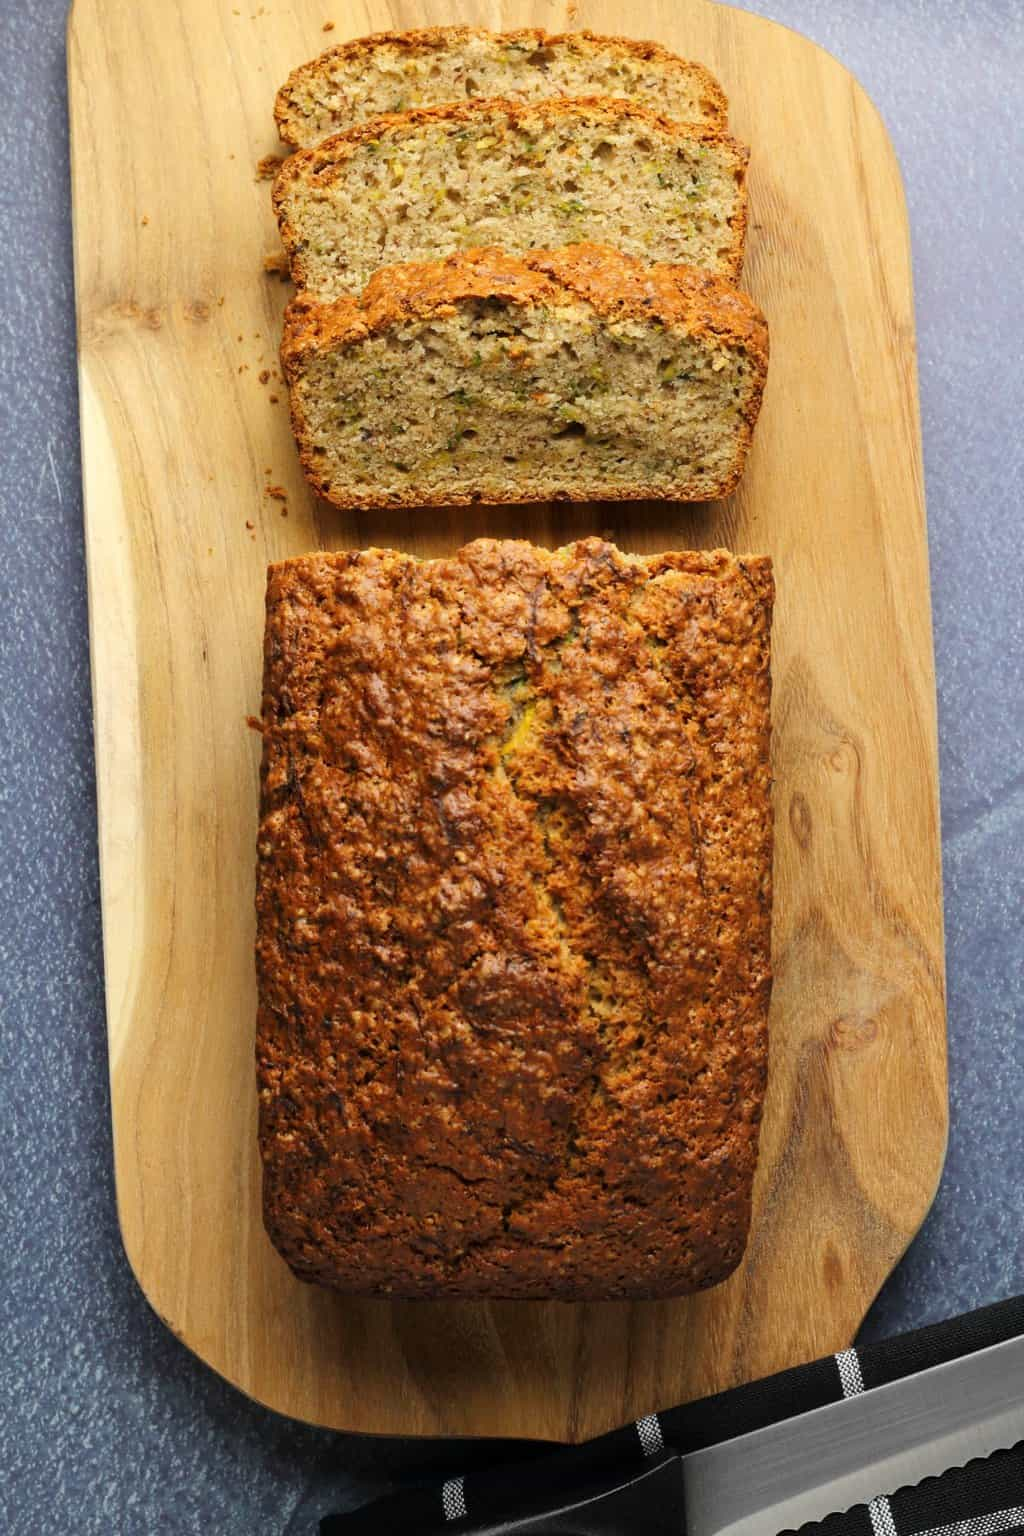 Vegan zucchini bread with the first few slices cut, on a wooden board.